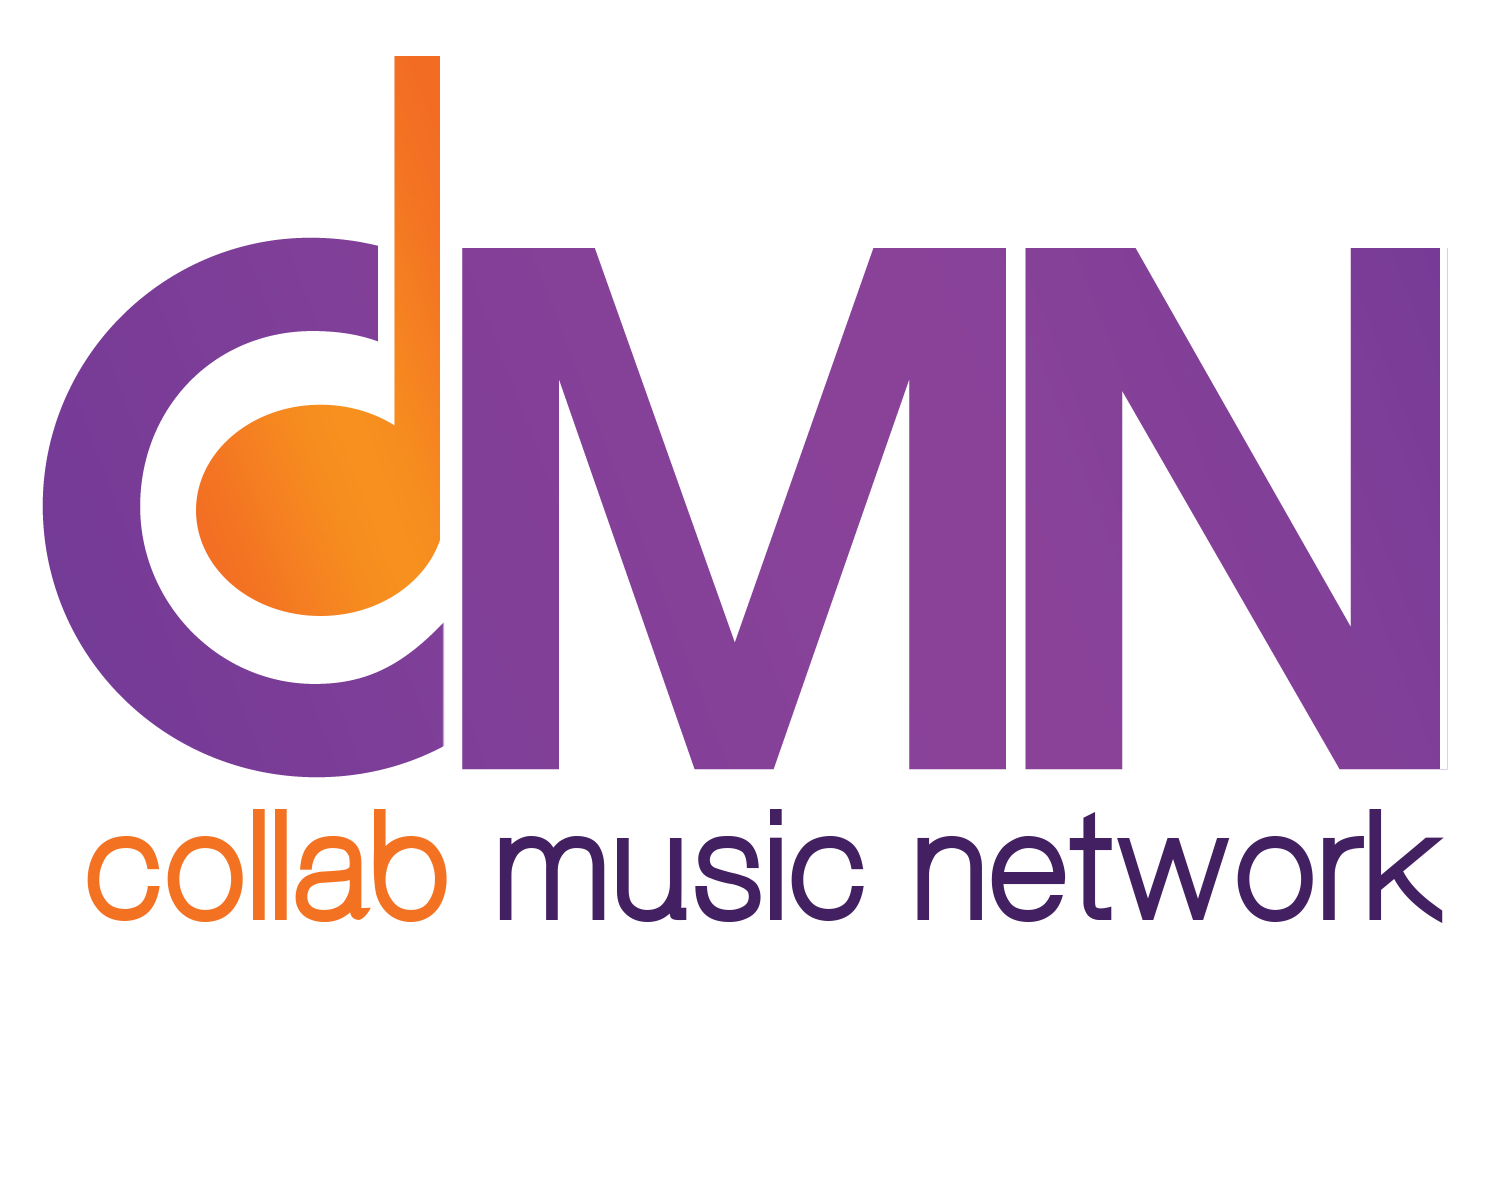 CMN - Collab Music Network manages Songwriters/Producers with a focus on developing a commercially viable catalog while empowering them through the entire creative process, including business operations. The network includes Songwriters, Beat Makers, Producers, Musicians, Engineers, Artists, Demo Artists, Publishers, Music Executives, and Music Industry Professionals.